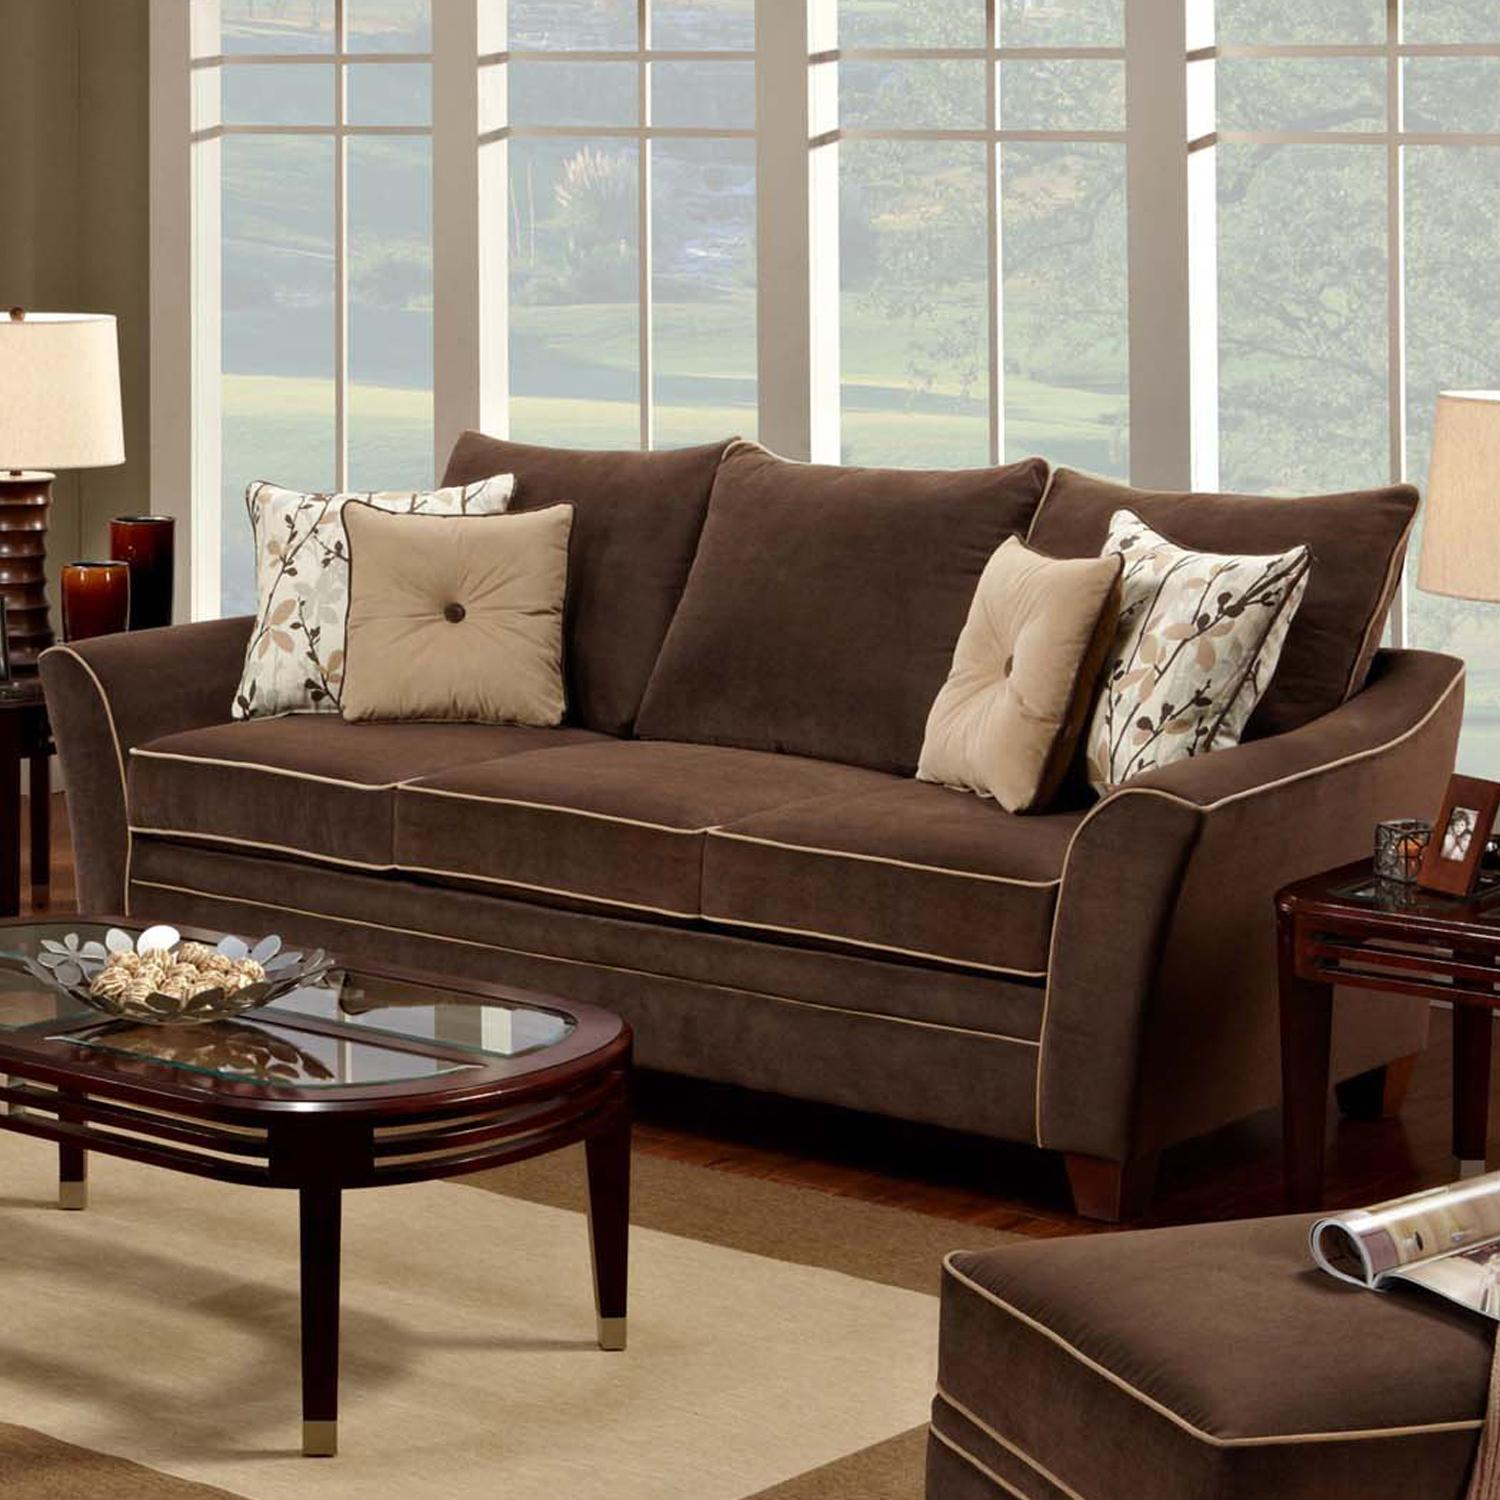 811 Bridgeport Sofa by Franklin at Wilcox Furniture